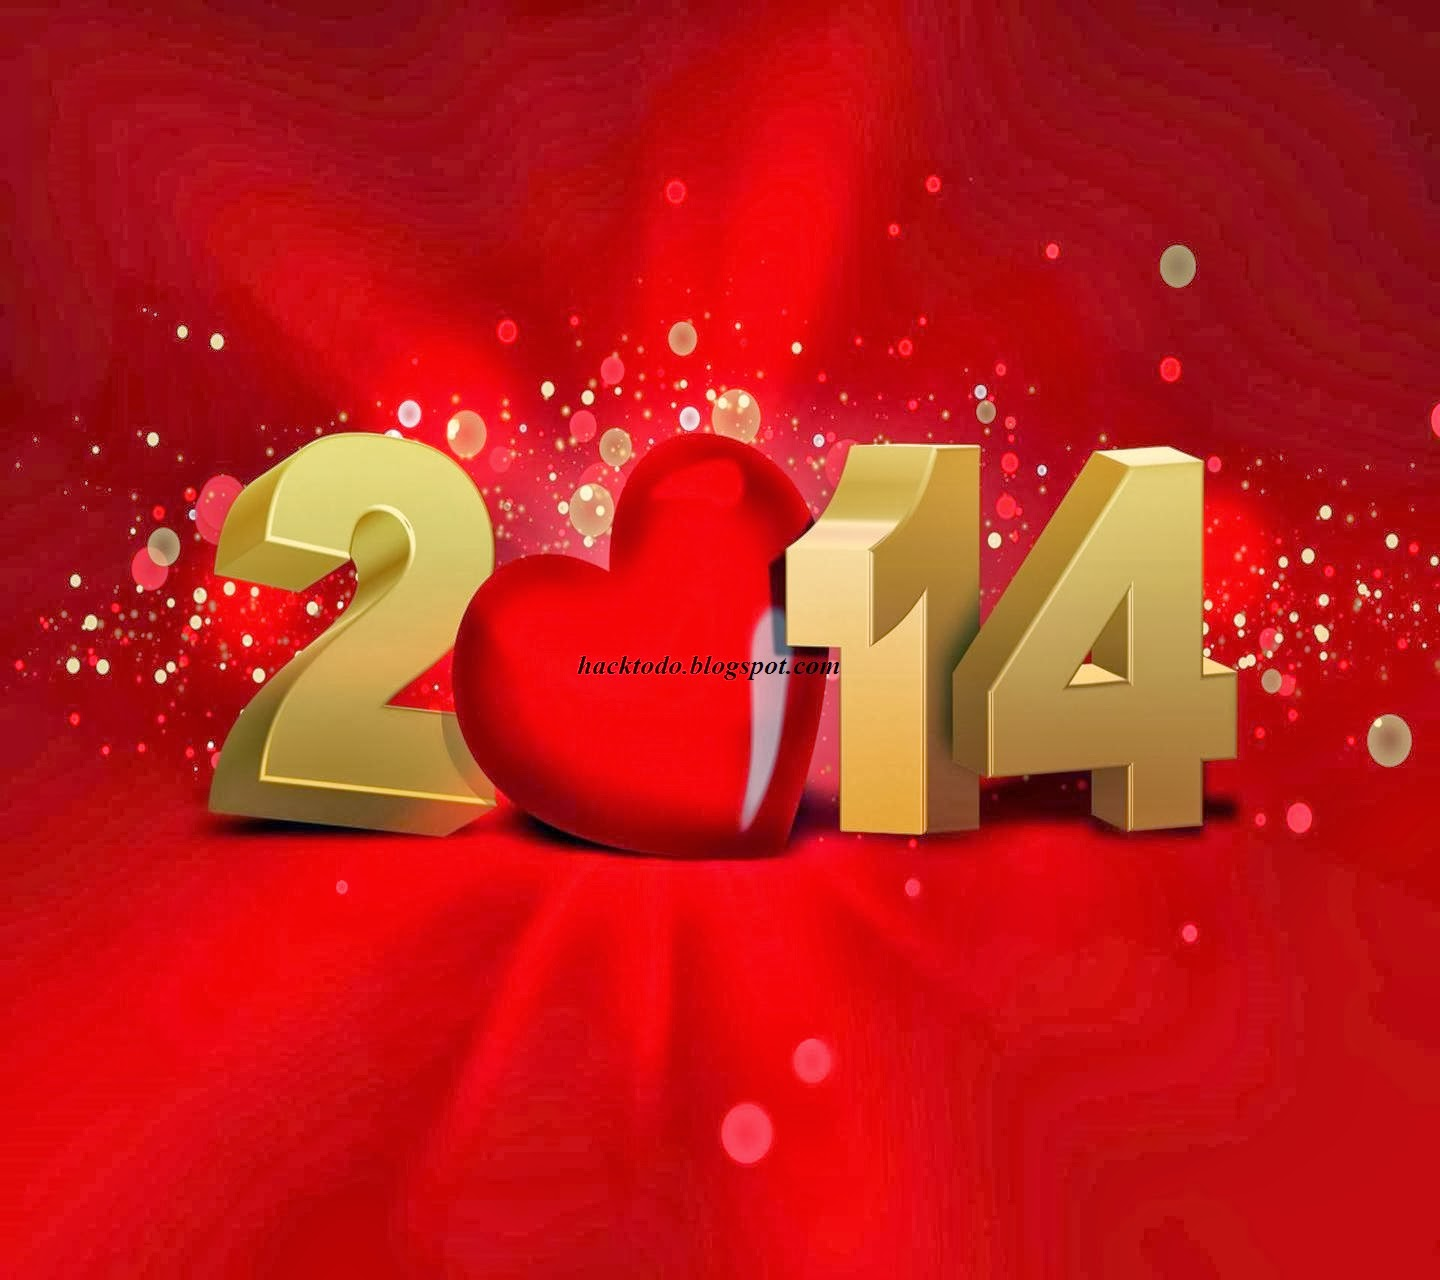 Happy New Year 2014 Wallpapers2014 Wallpapers.12 Happy New Year Mp3 Zing 2014